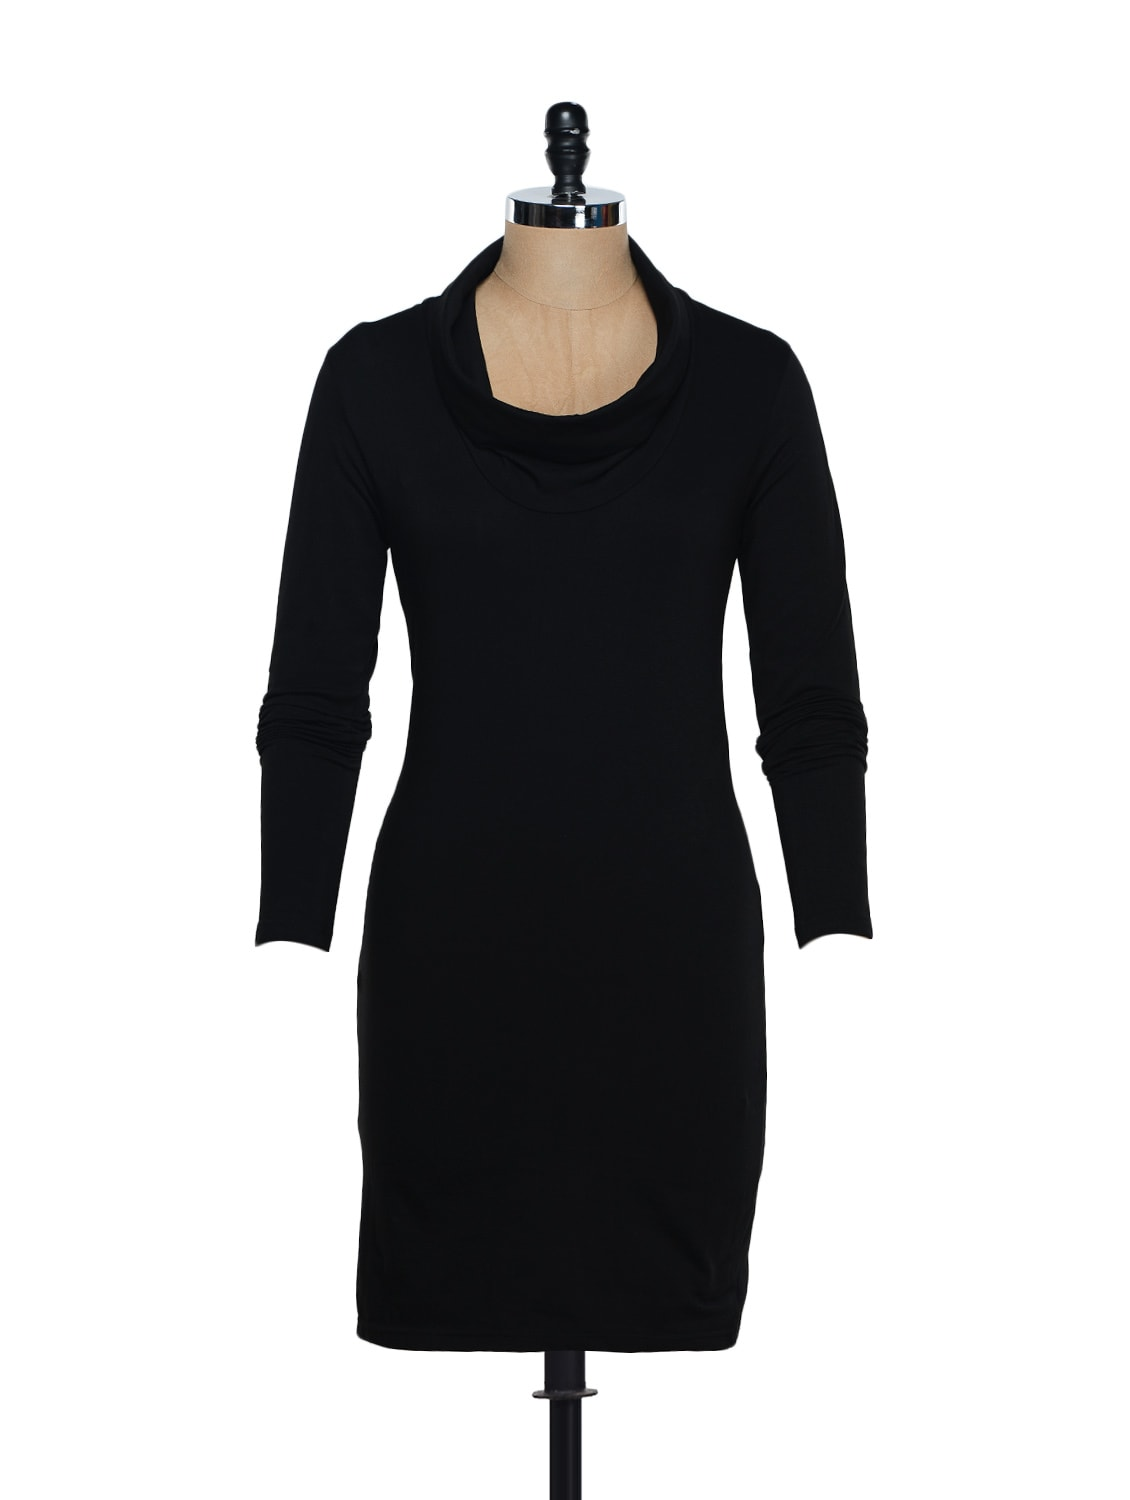 Black Dress With Long Sleeves - Eavan